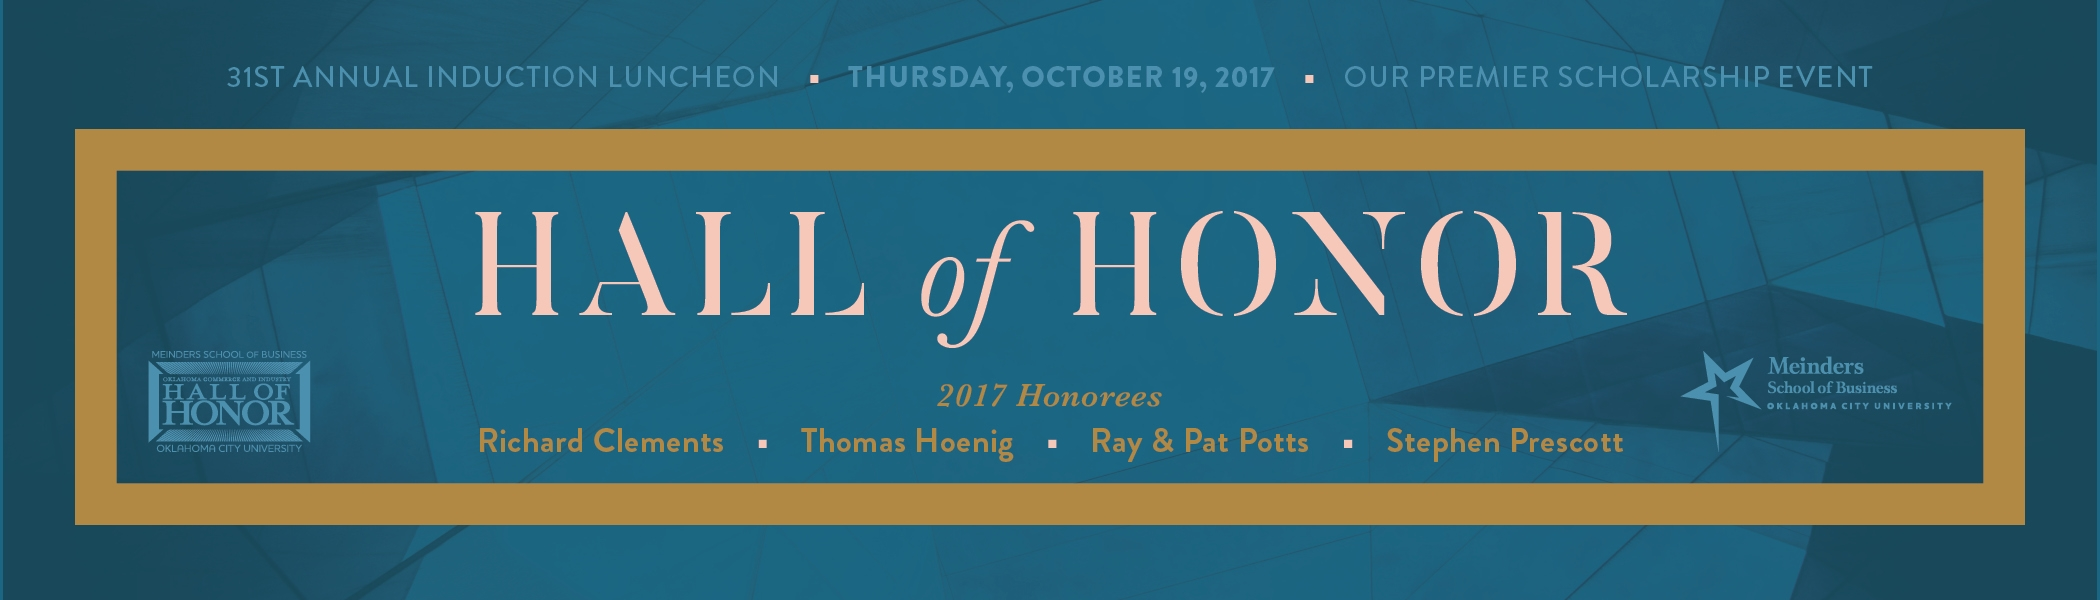 Hall of Honor header bar